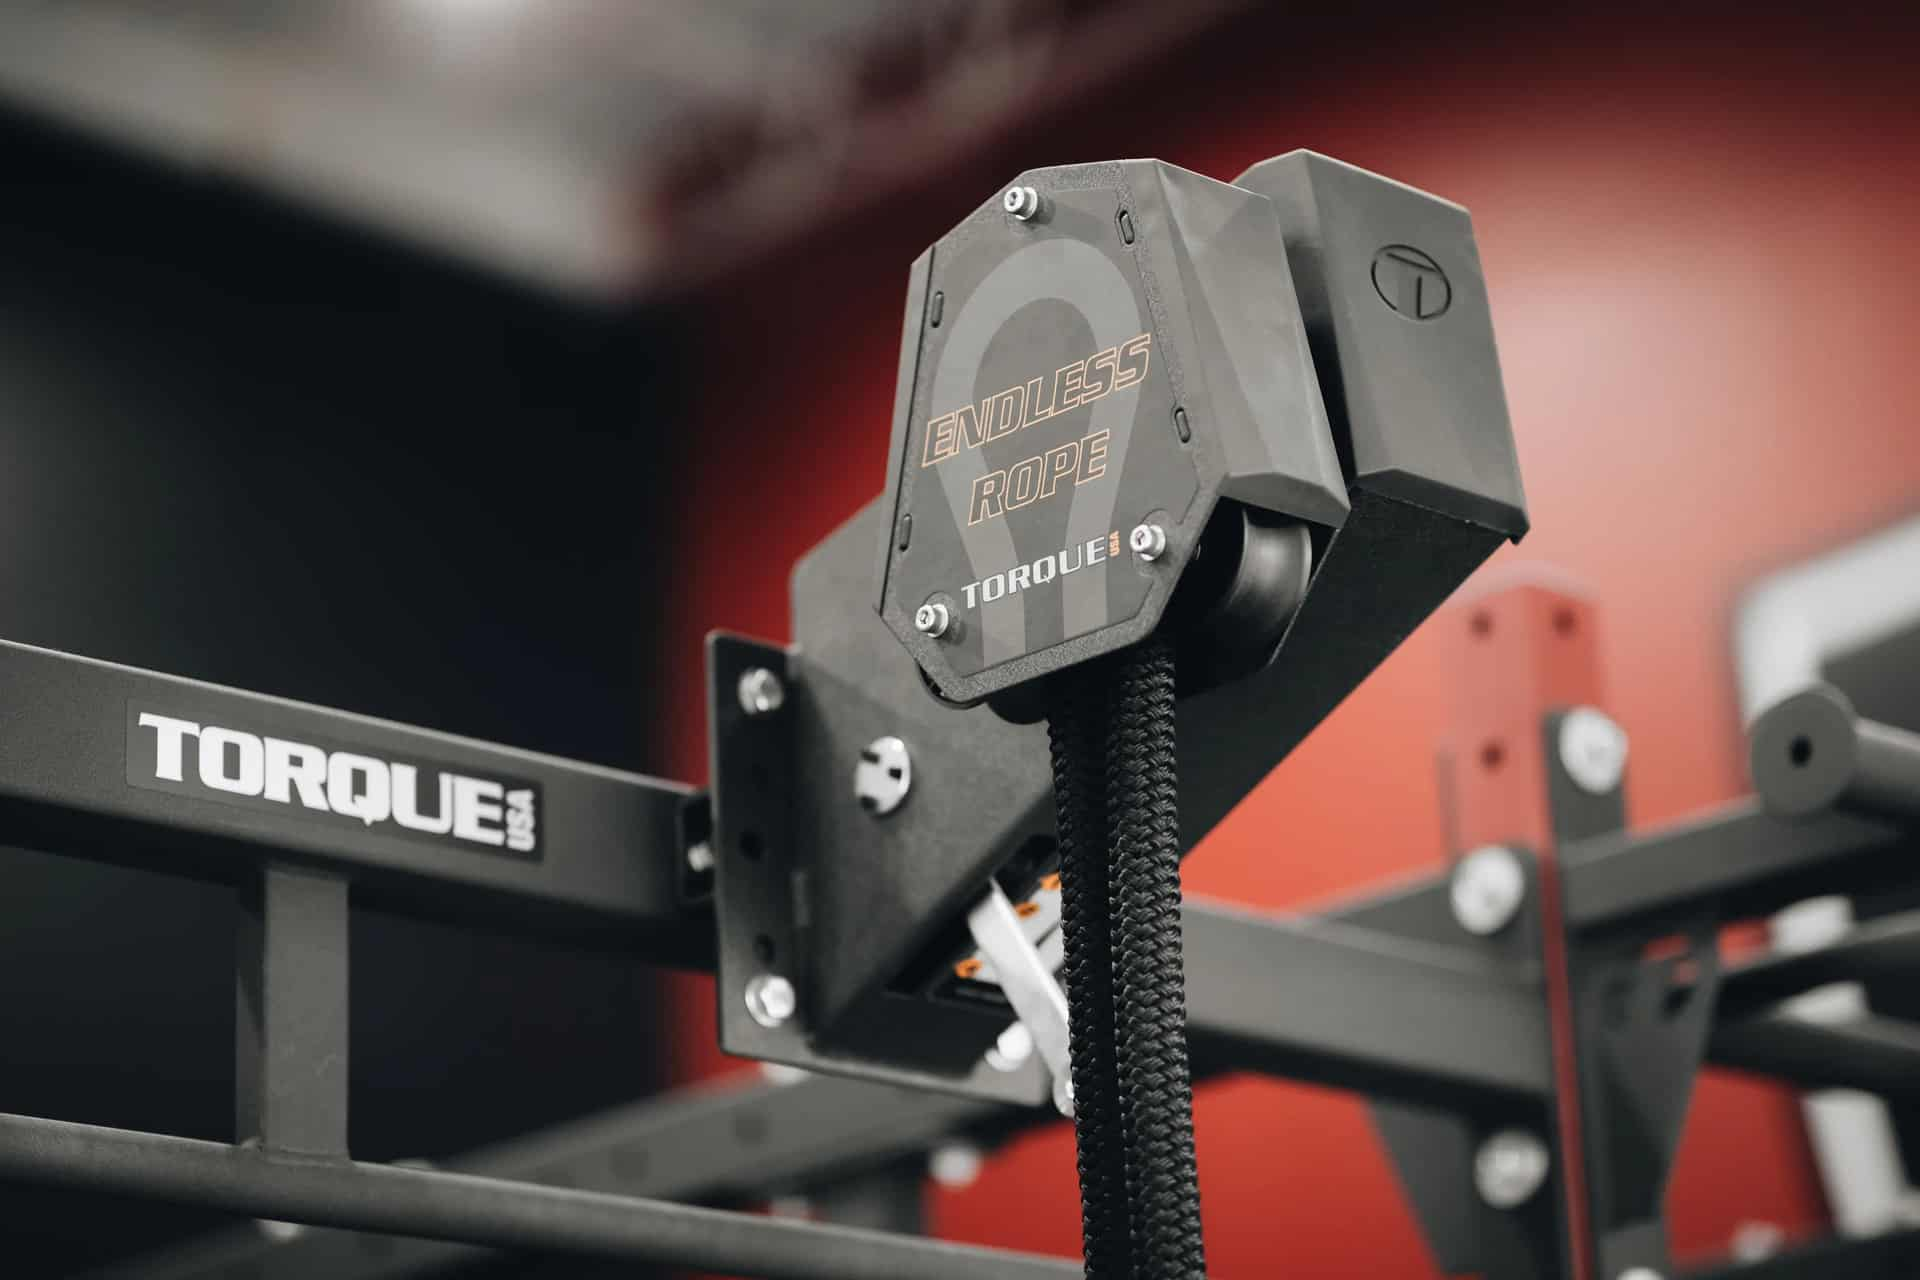 Torque Fitness Endless Rope Trainer pivoting roller